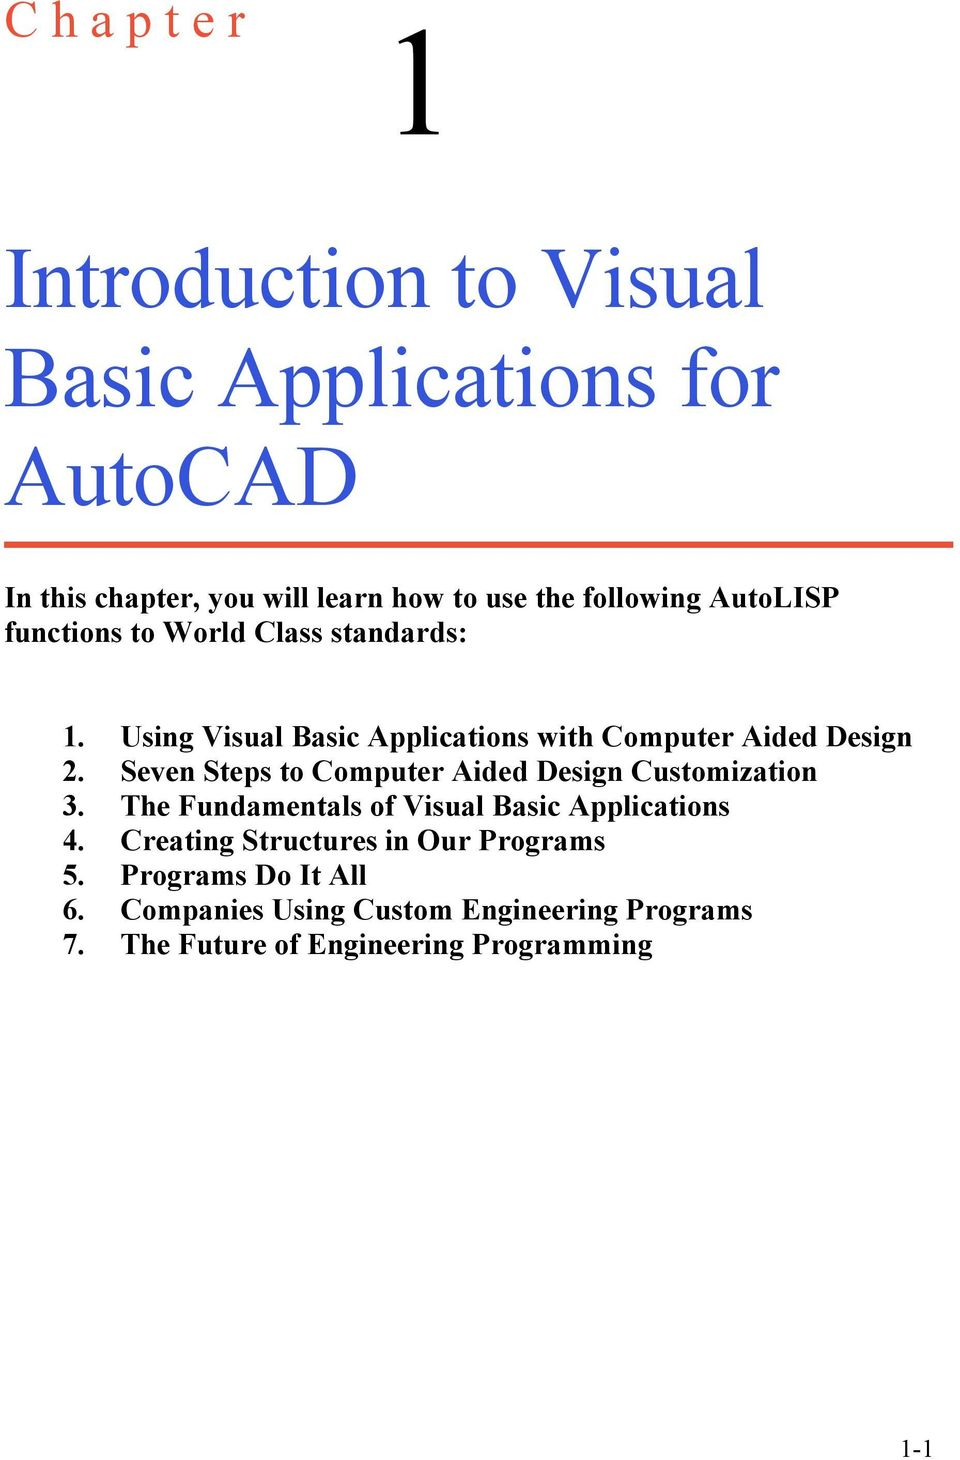 Introduction to Visual Basic Applications for AutoCAD - PDF